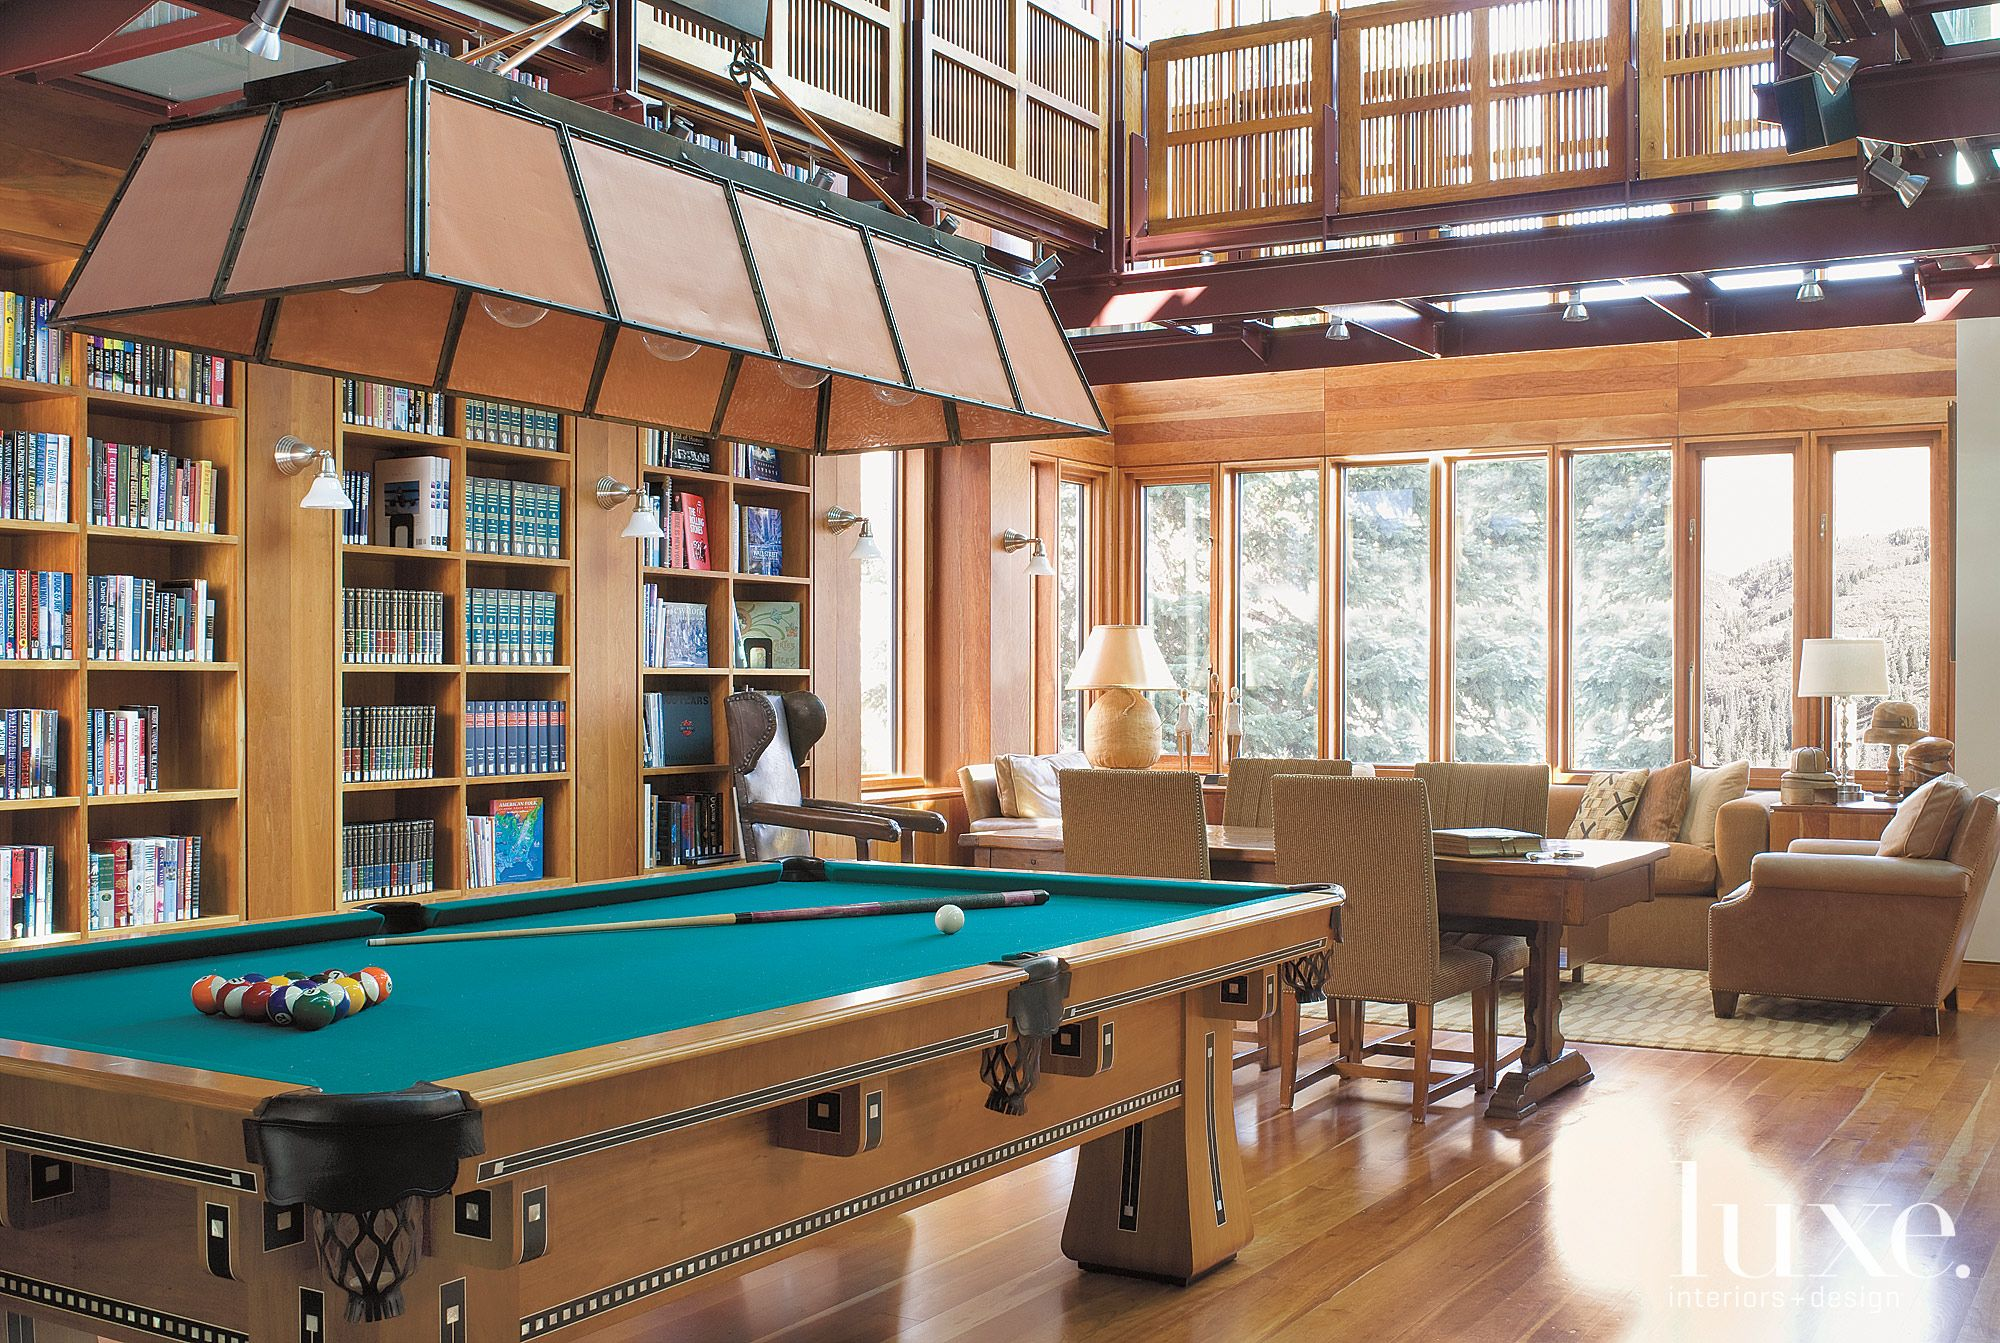 Brown Mountain Study with Pool Table